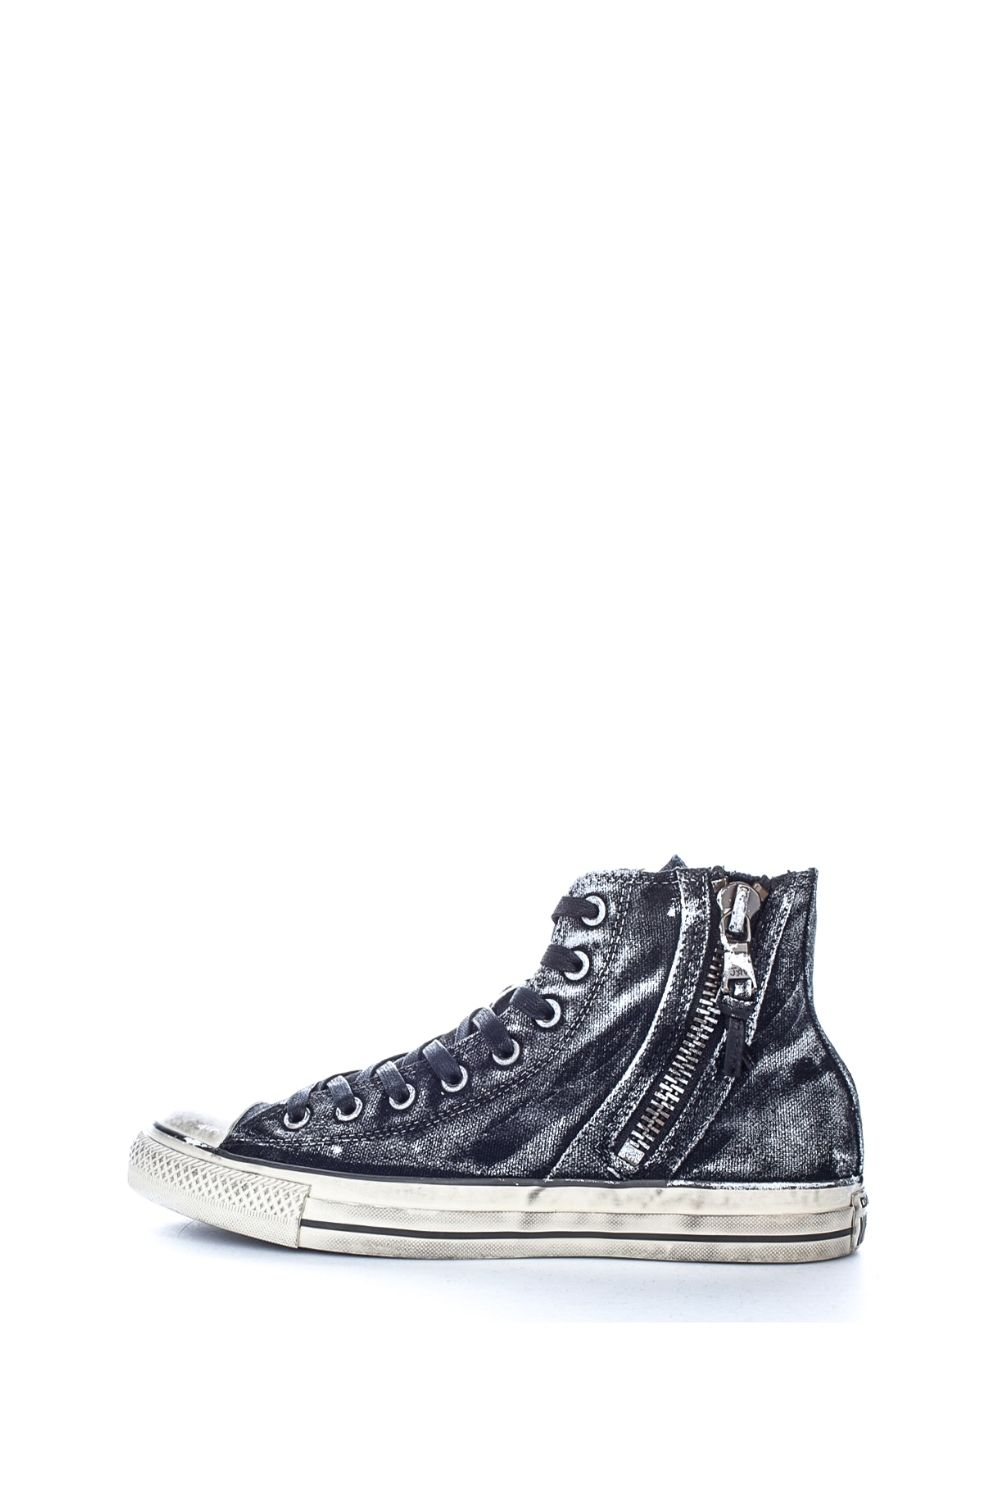 CONVERSE – Μποτάκια All Star John Varvatos X Chuck Taylor side zip